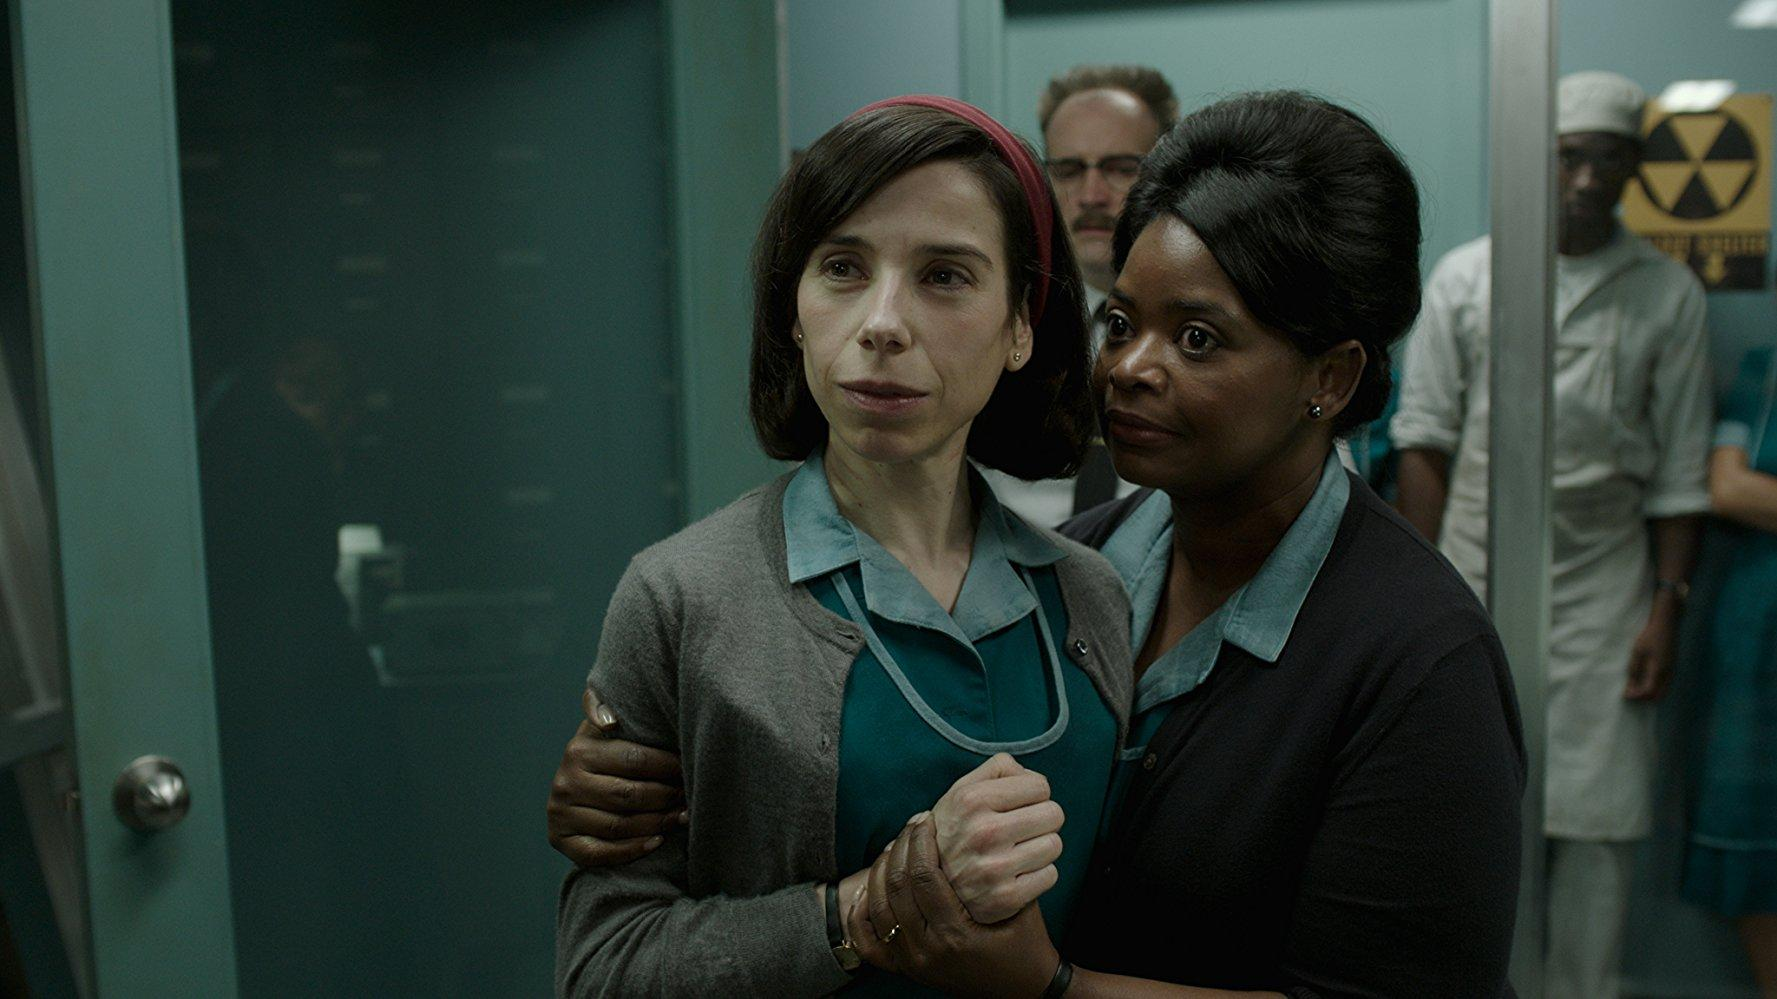 """FOX SEARCHLIGHT PICTURES The Academy Award frontrunner with 13 nominations this year, """"The Shape of Water"""" is directed by veteran filmmaker Guillermo del Toro and led by Sally Hawkins in a mute role for which she is nominated for best actress. The film tells a love story between a maintenance worker and an aquatic humanoid creature."""